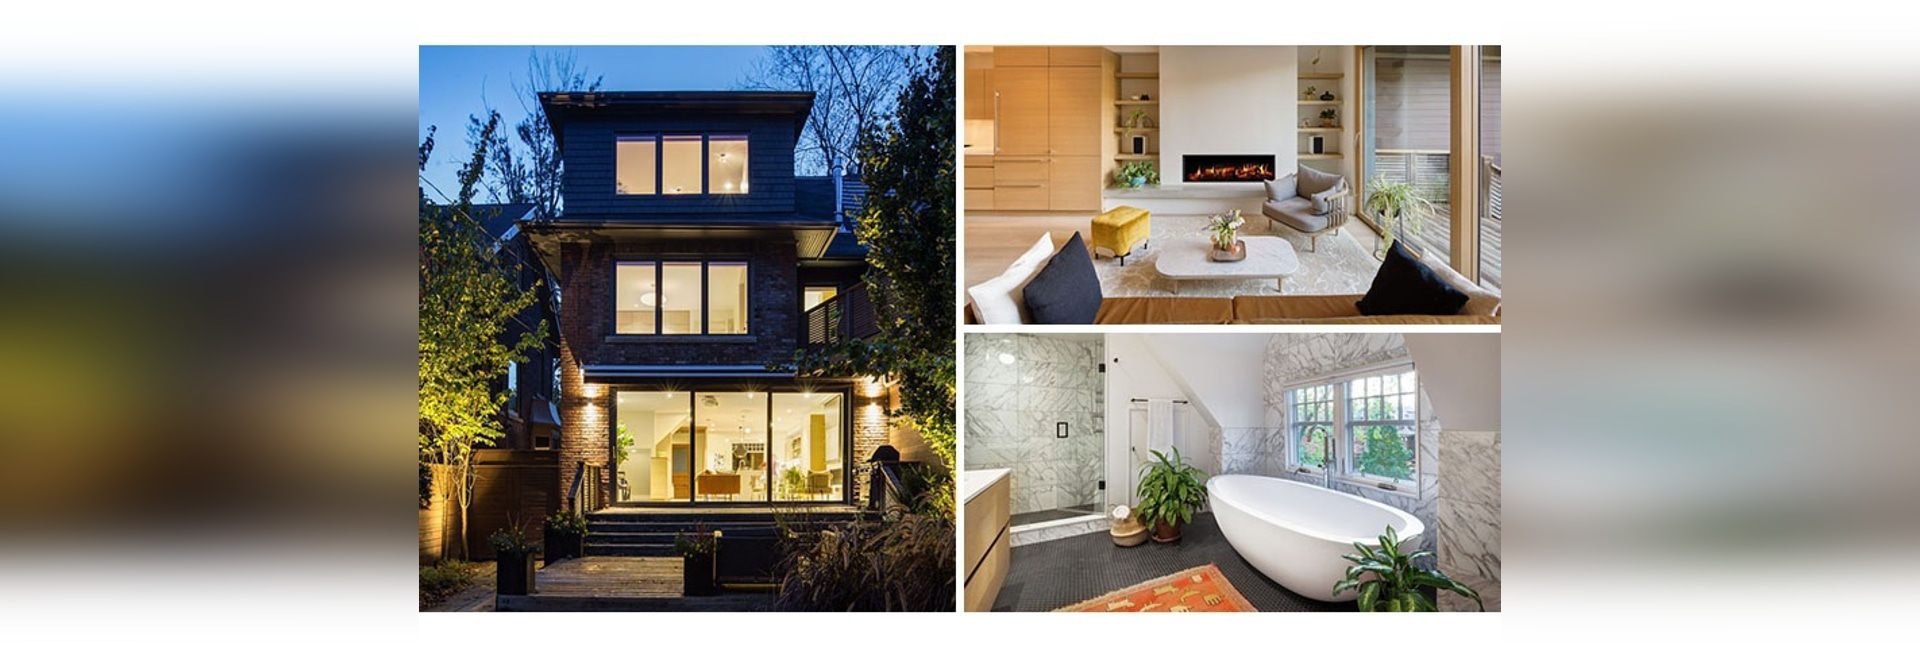 Altius Architecture Gave This Semi-Detached Toronto Home A Contemporary Update